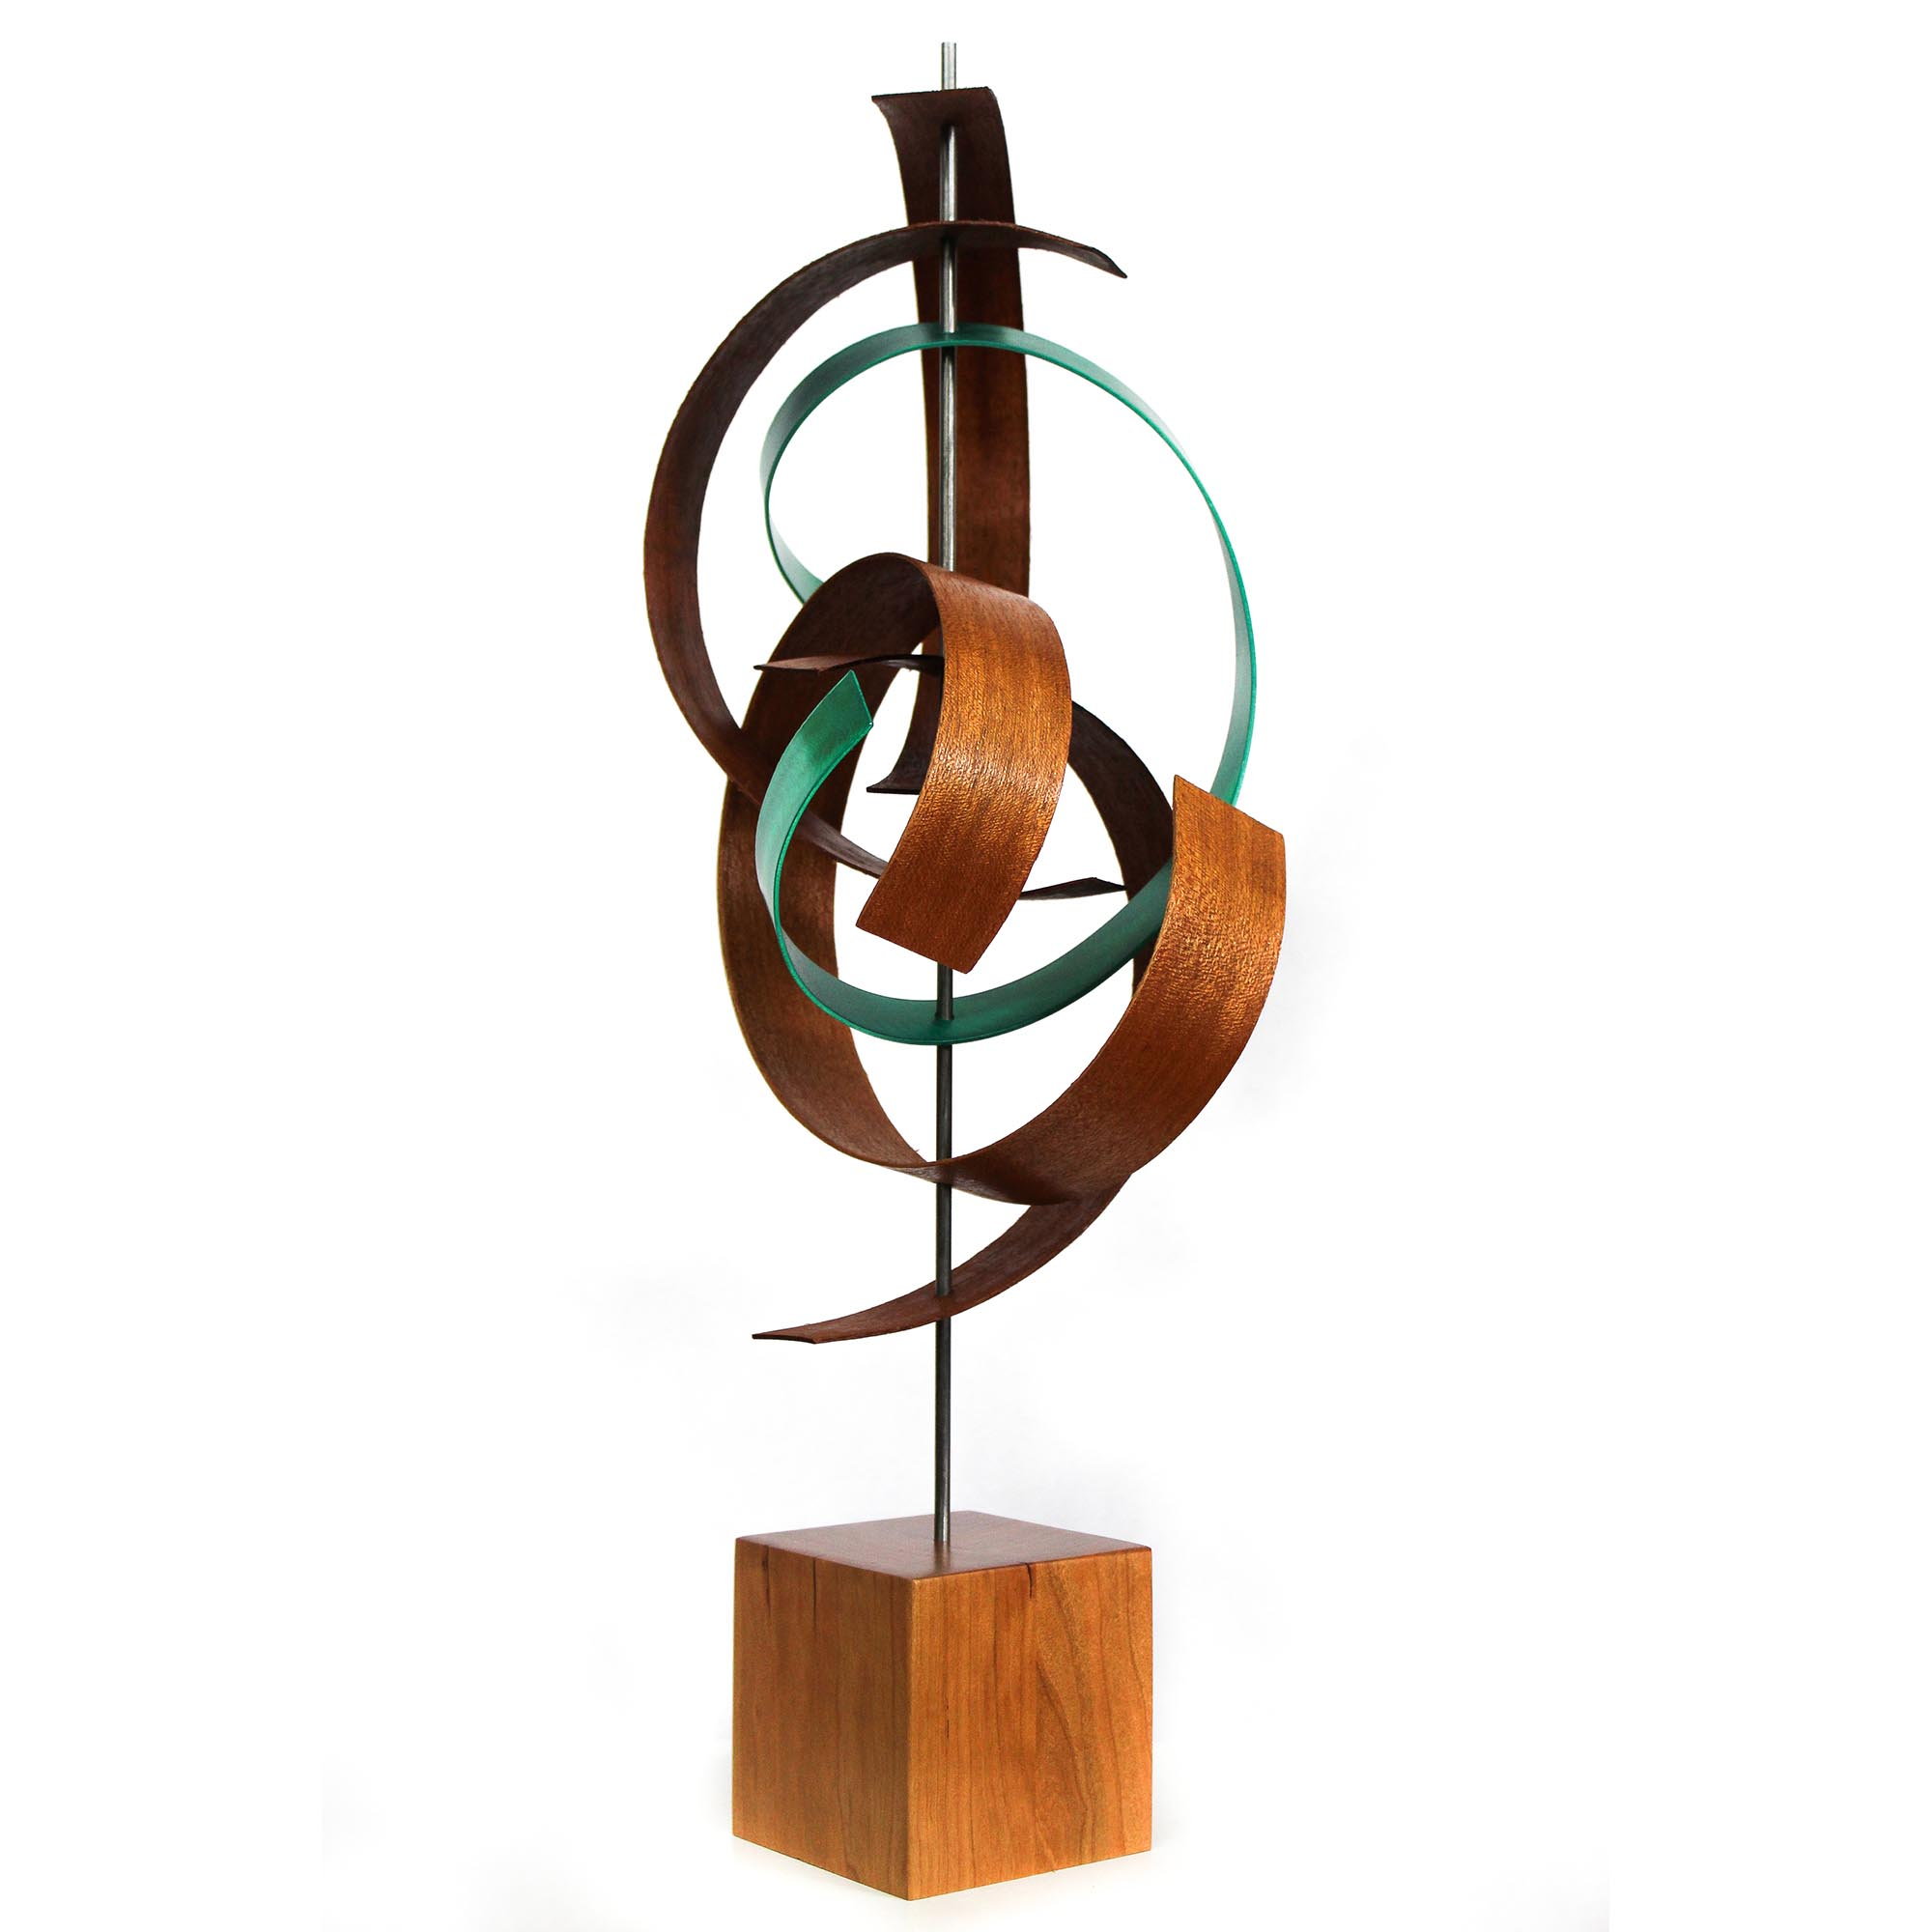 Jackson Wright 'Intertwine' 8in x 21in Contemporary Style Modern Wood Sculpture